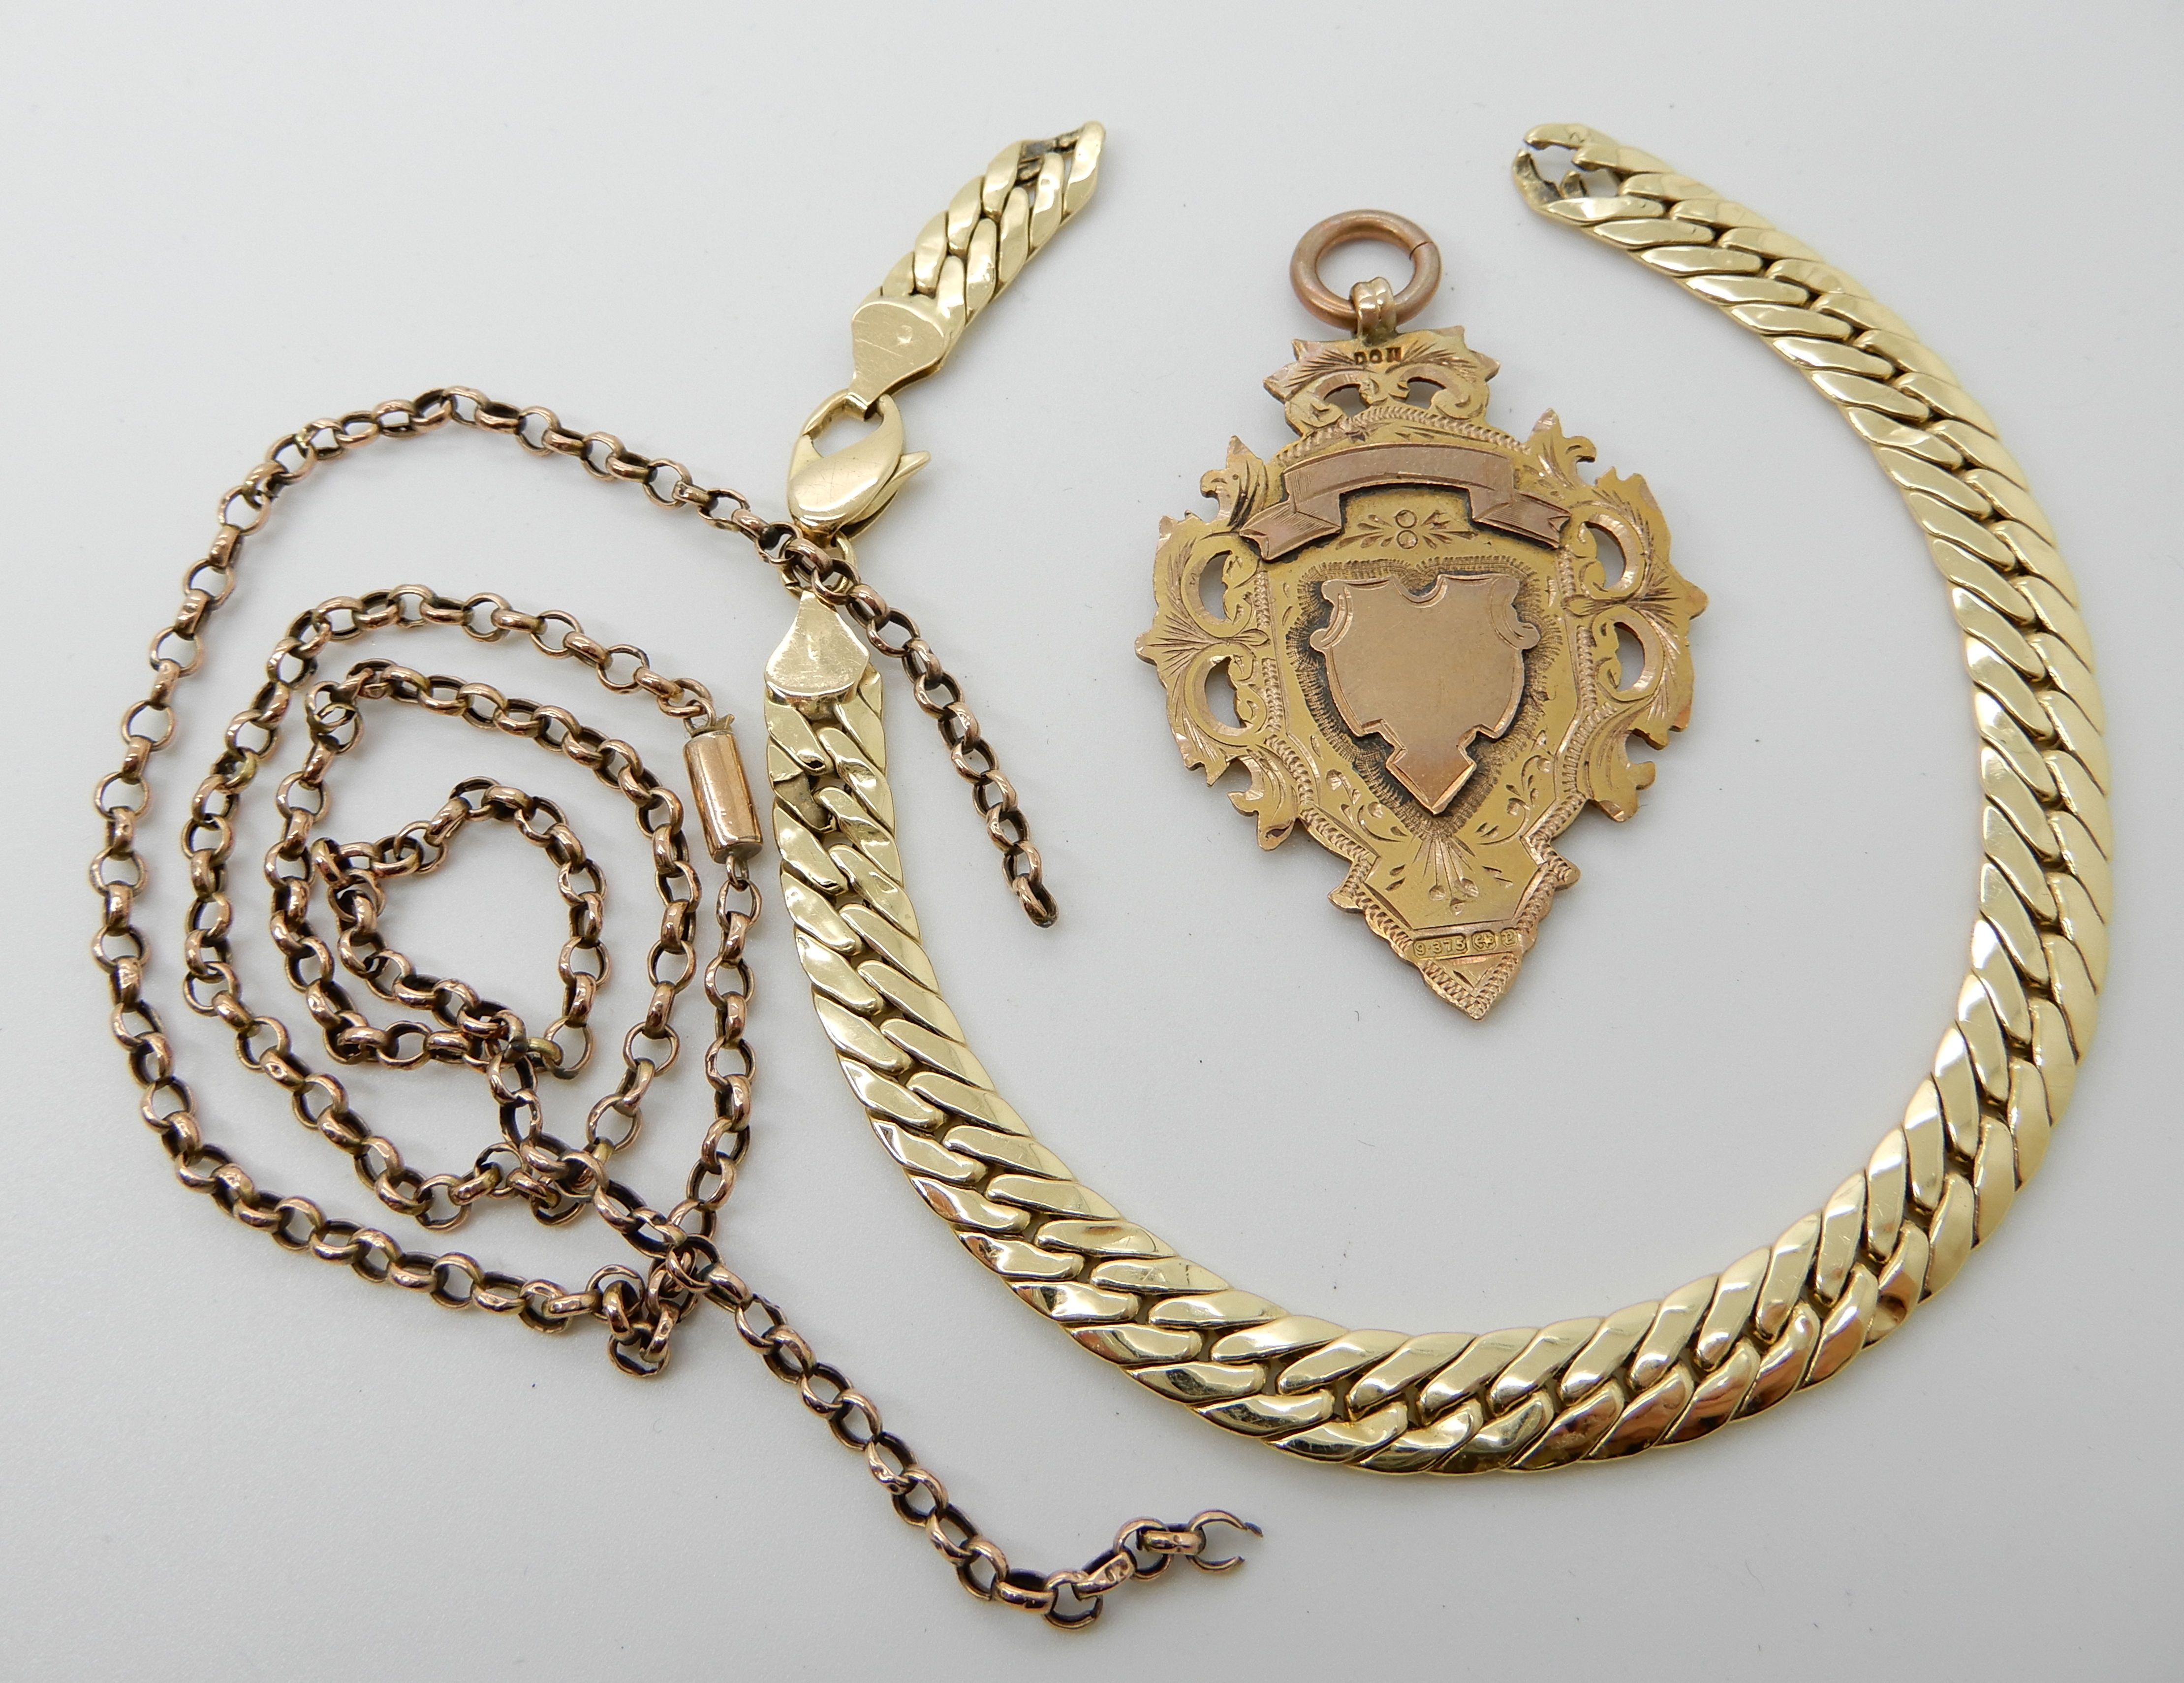 Lot 30 - A 9ct gold medallion, a 9ct bracelet, and a further yellow metal chain both (af) combined weight